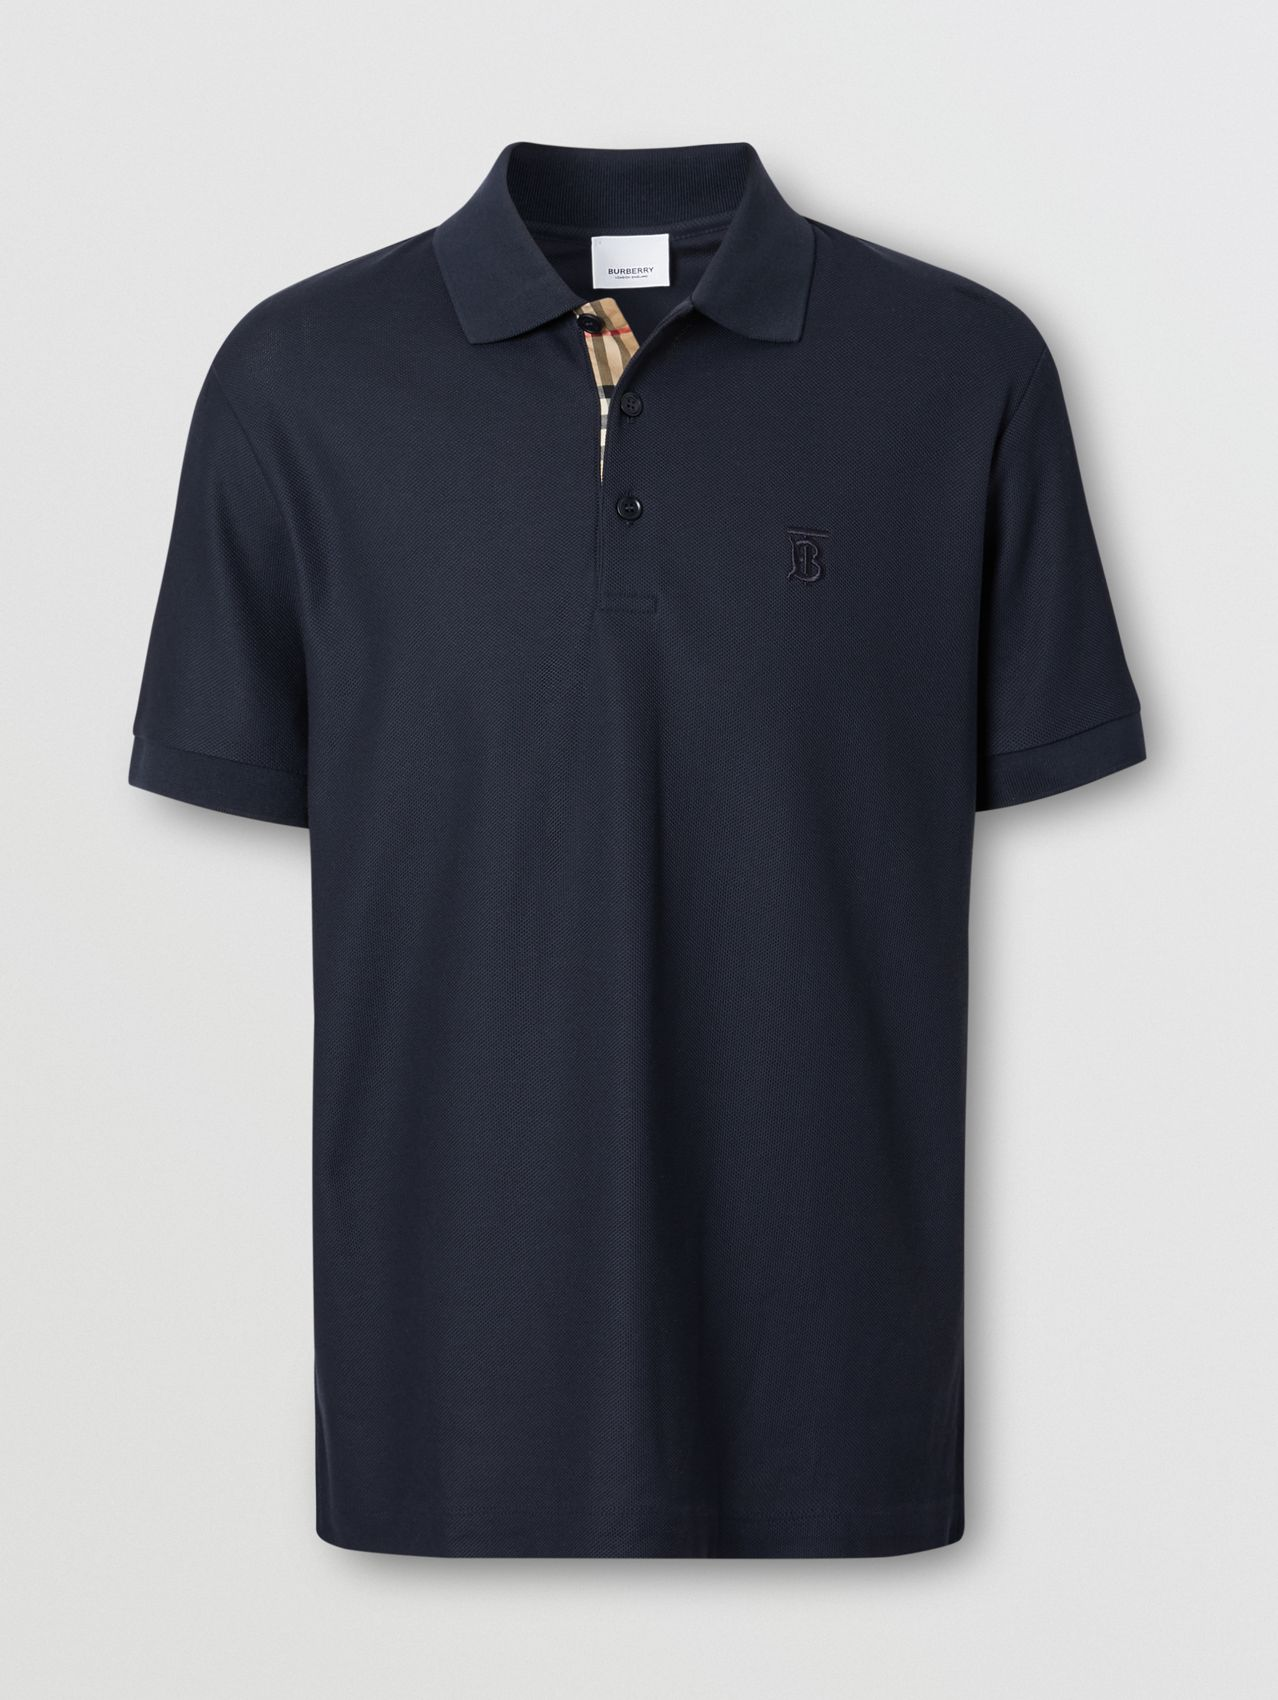 Monogram Motif Cotton Piqué Polo Shirt in Navy